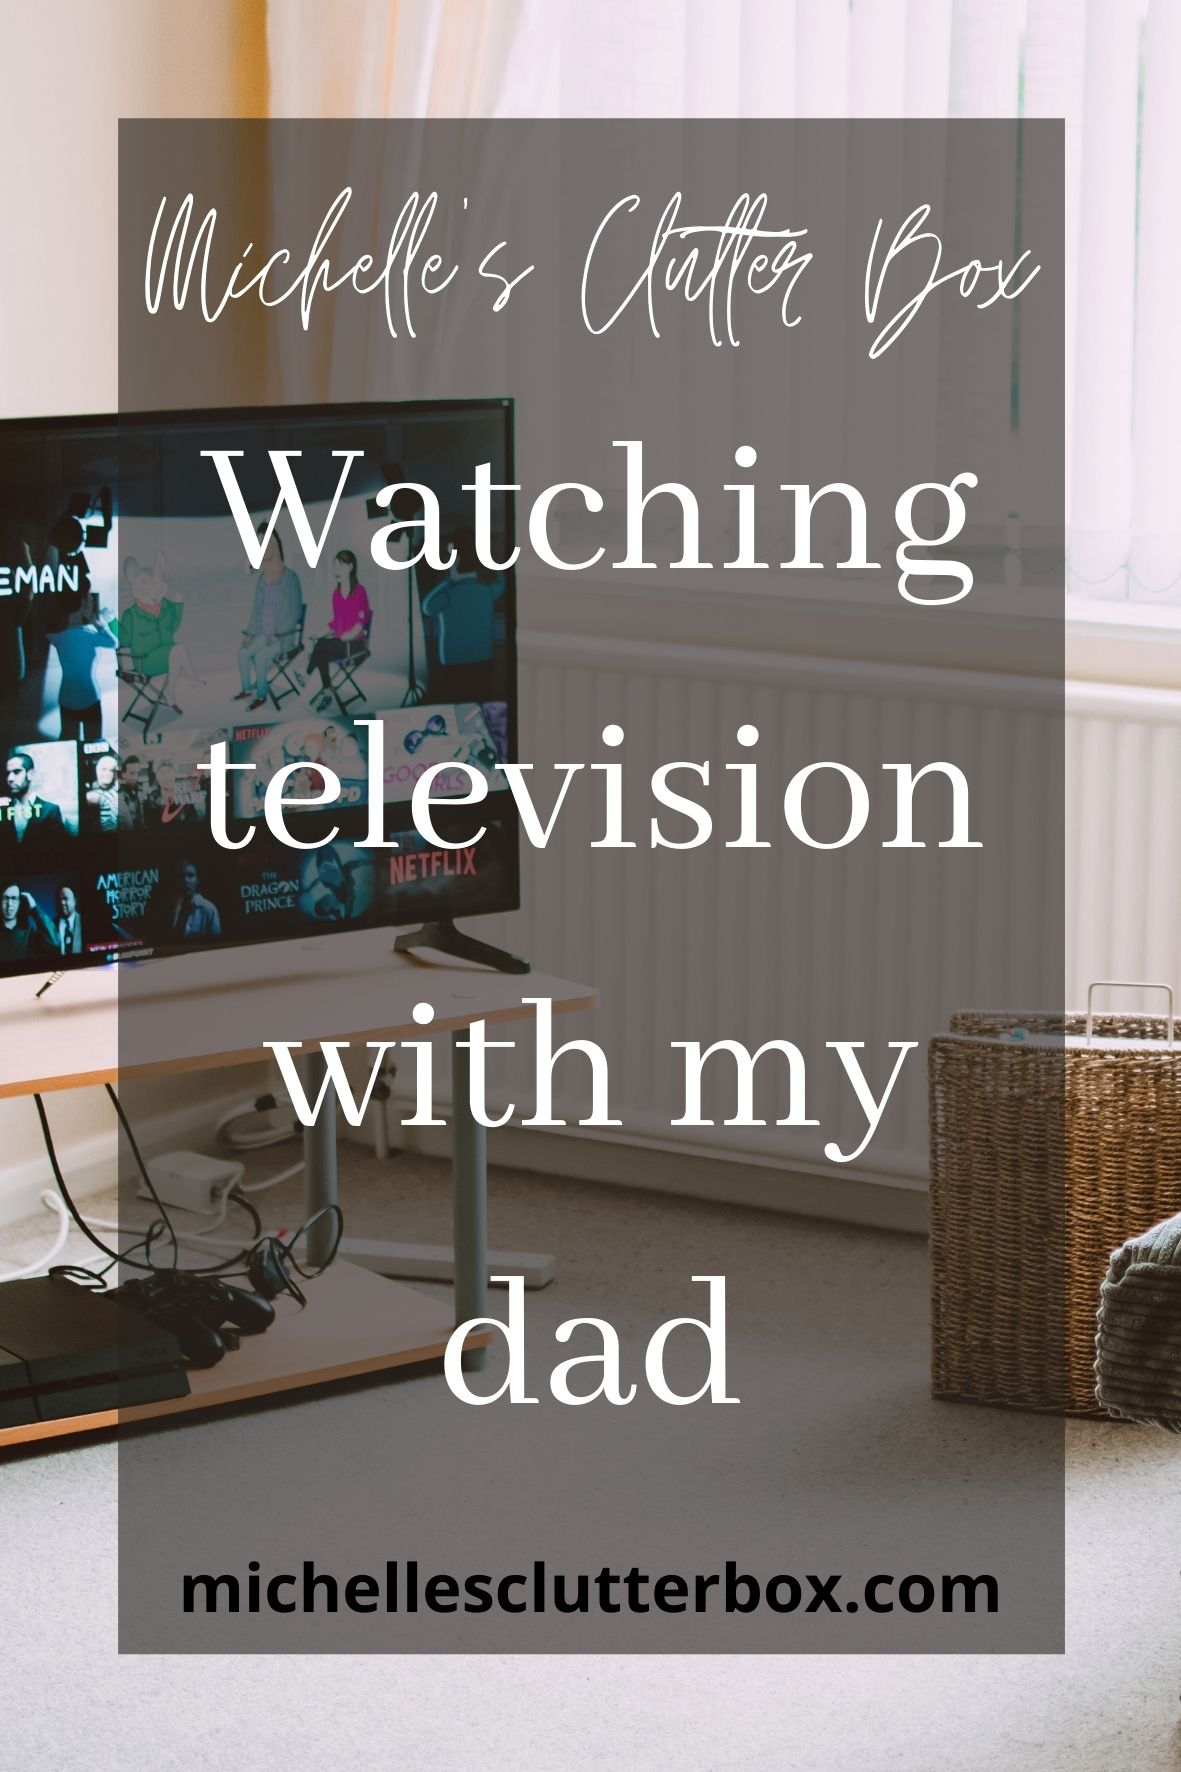 Watching television with my dad